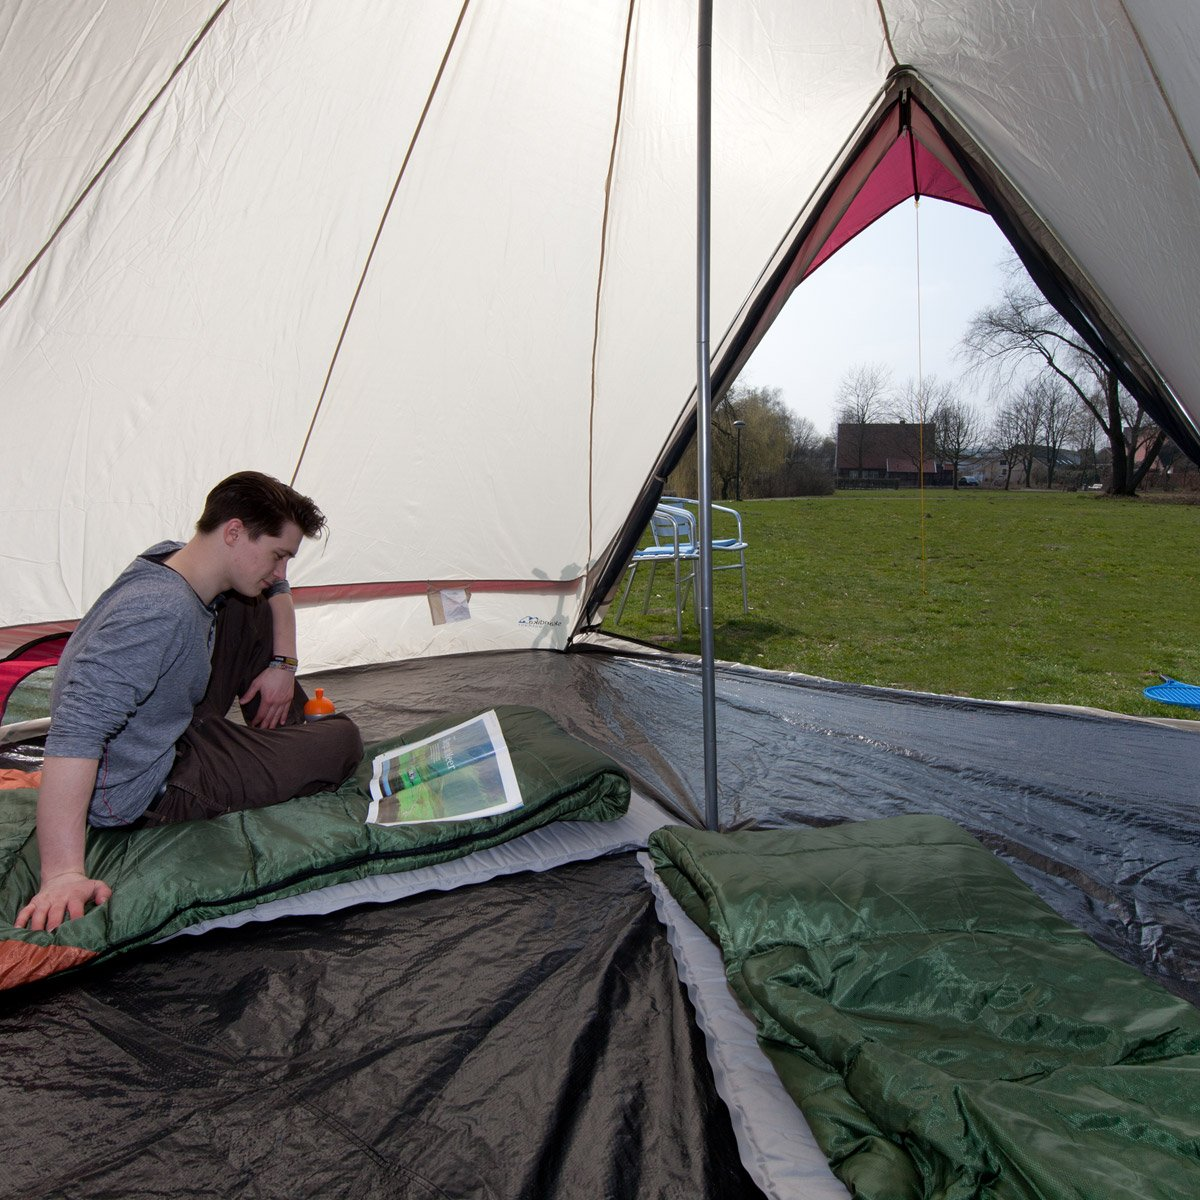 Skandika Waterproof Comanche Unisex Outdoor Frame Tent available in Red - 8 Persons Amazon.co.uk Sports u0026 Outdoors  sc 1 st  Amazon UK & Skandika Waterproof Comanche Unisex Outdoor Frame Tent available ...